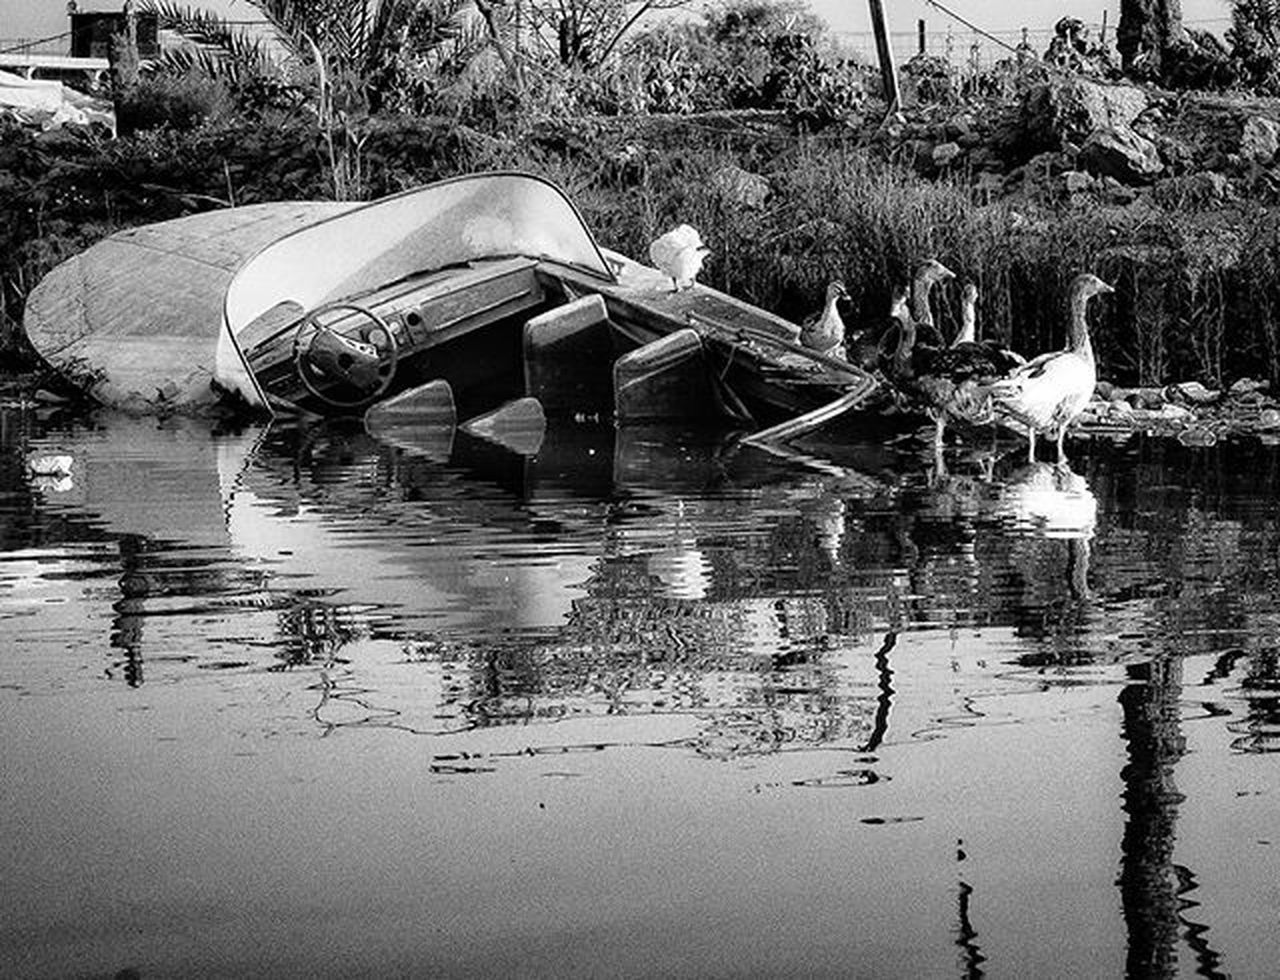 Sony Nex5 Sonynex5 Blackandwhite Monochrome River Shattalarab Palms Tree Duck Boat Sank Reflection Bnw